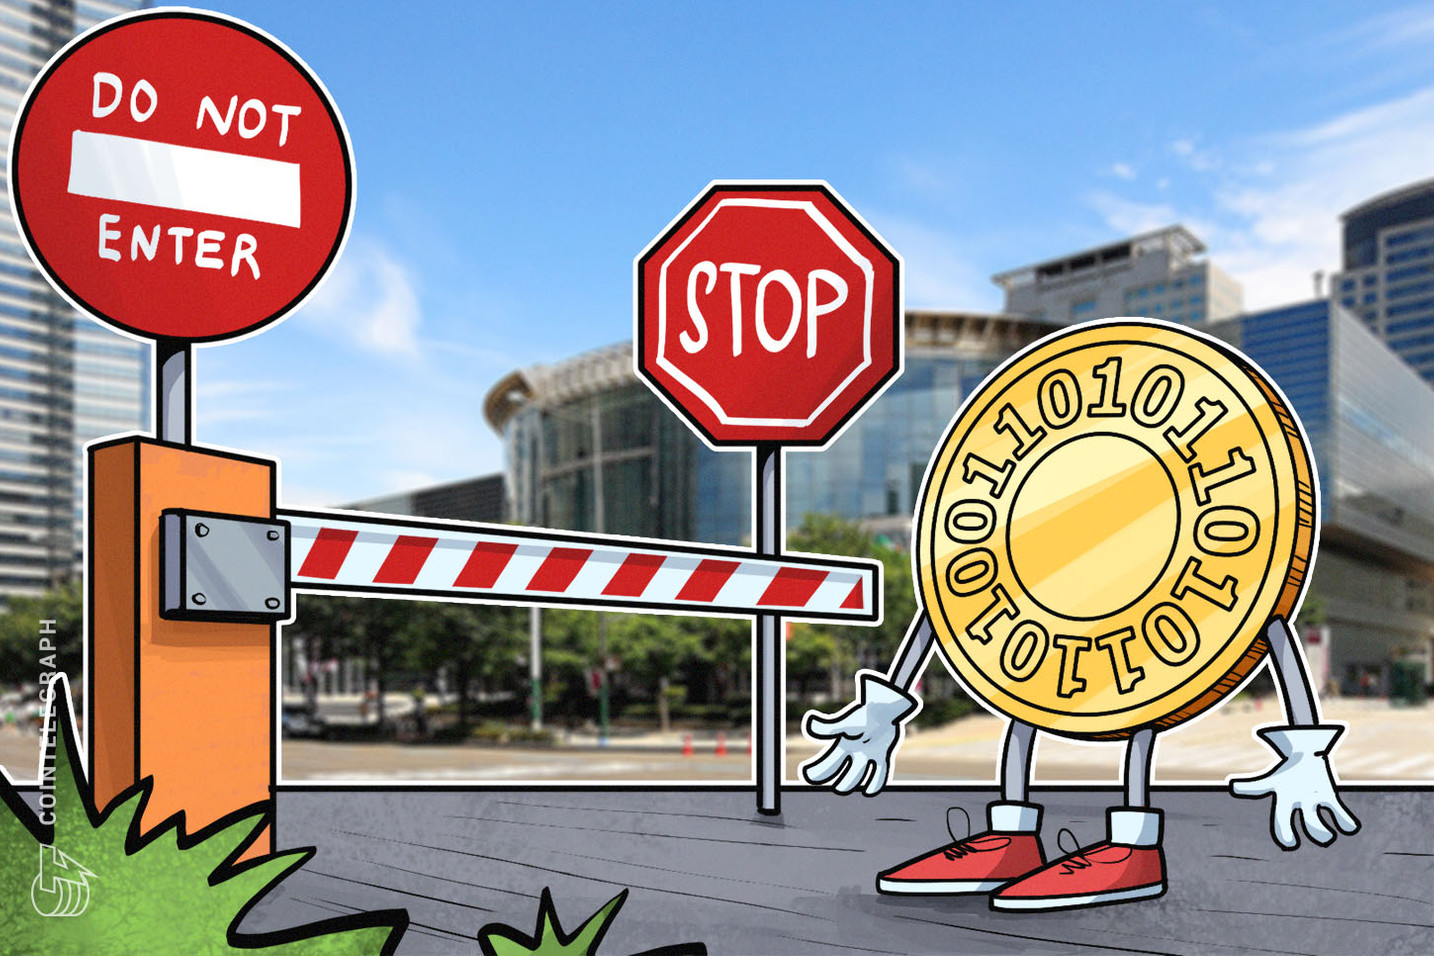 Bithumb Crypto Exchange Bans Accounts From 11 Countries